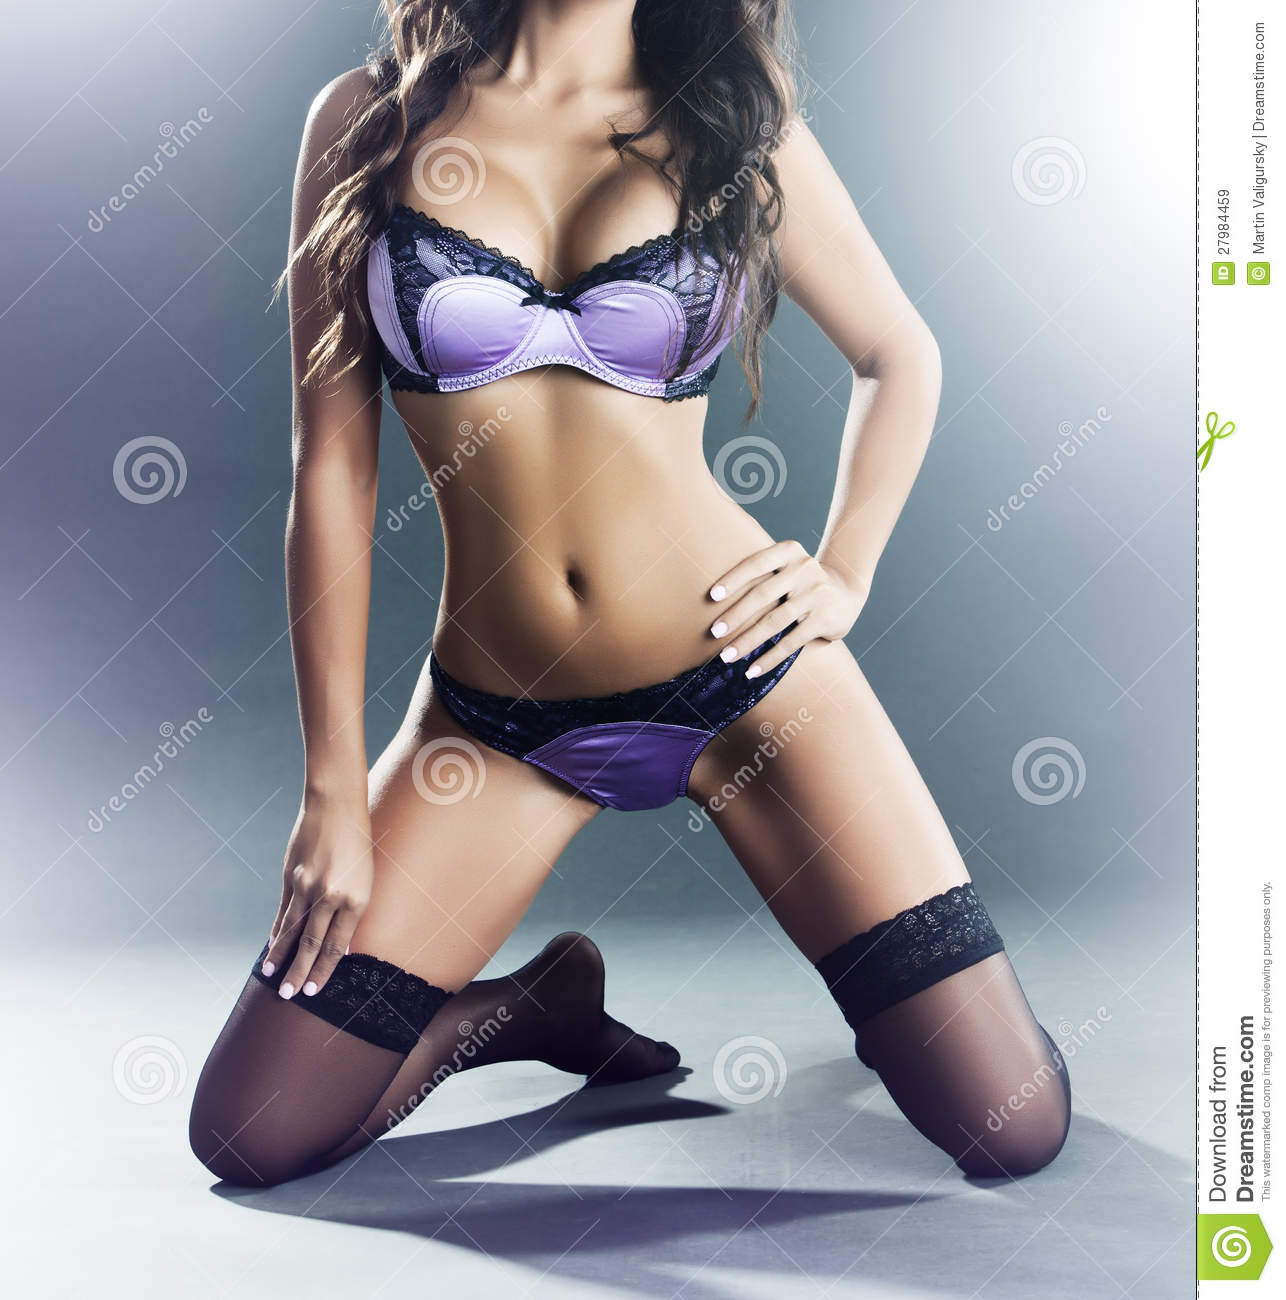 Woman In Purple Lingerie And Stockings Royalty Free Stock Images ...